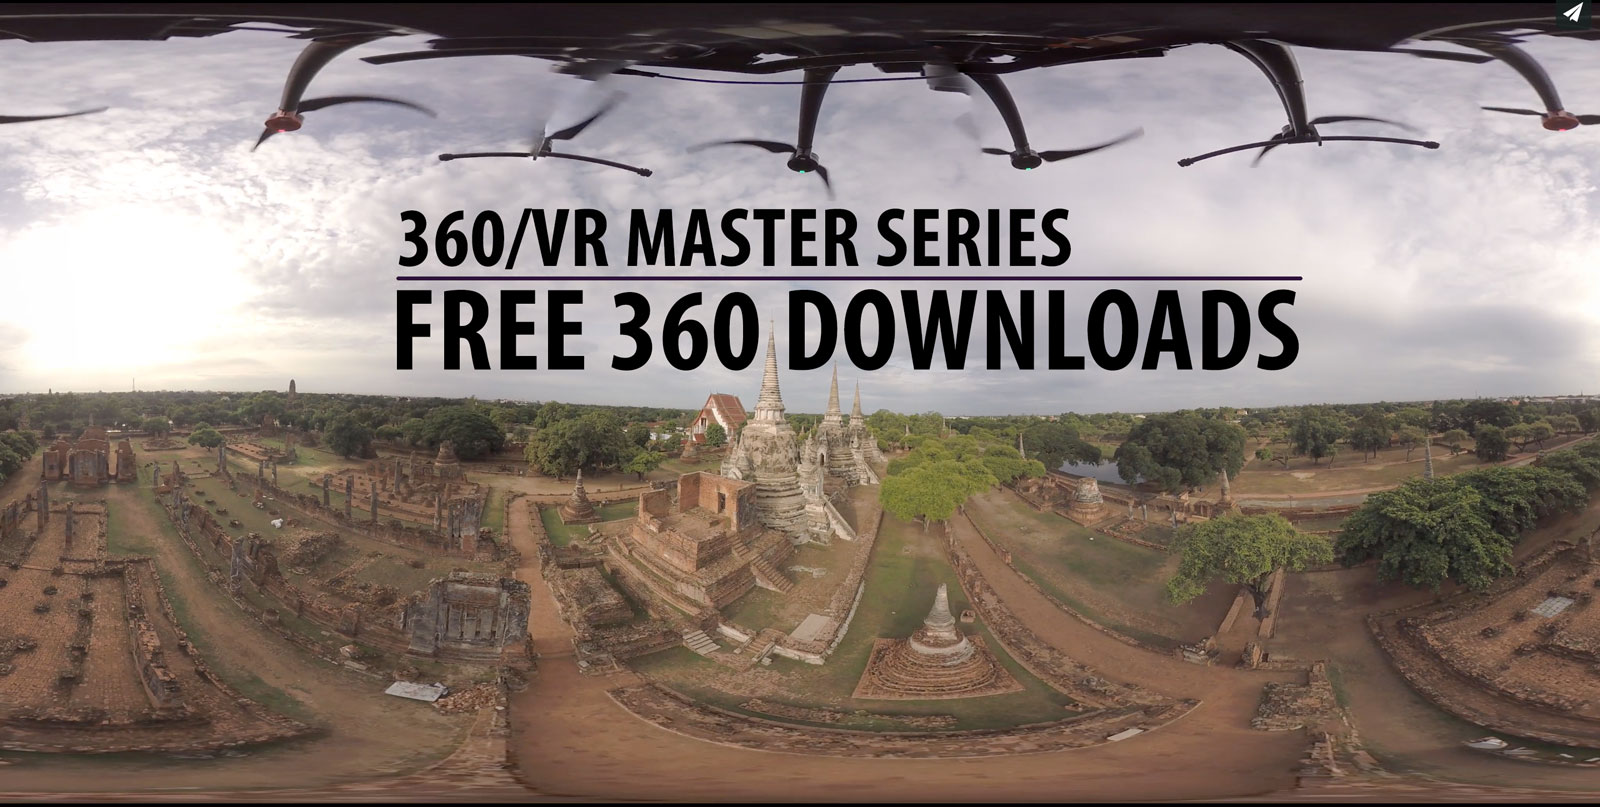 FREE-360-Downloads